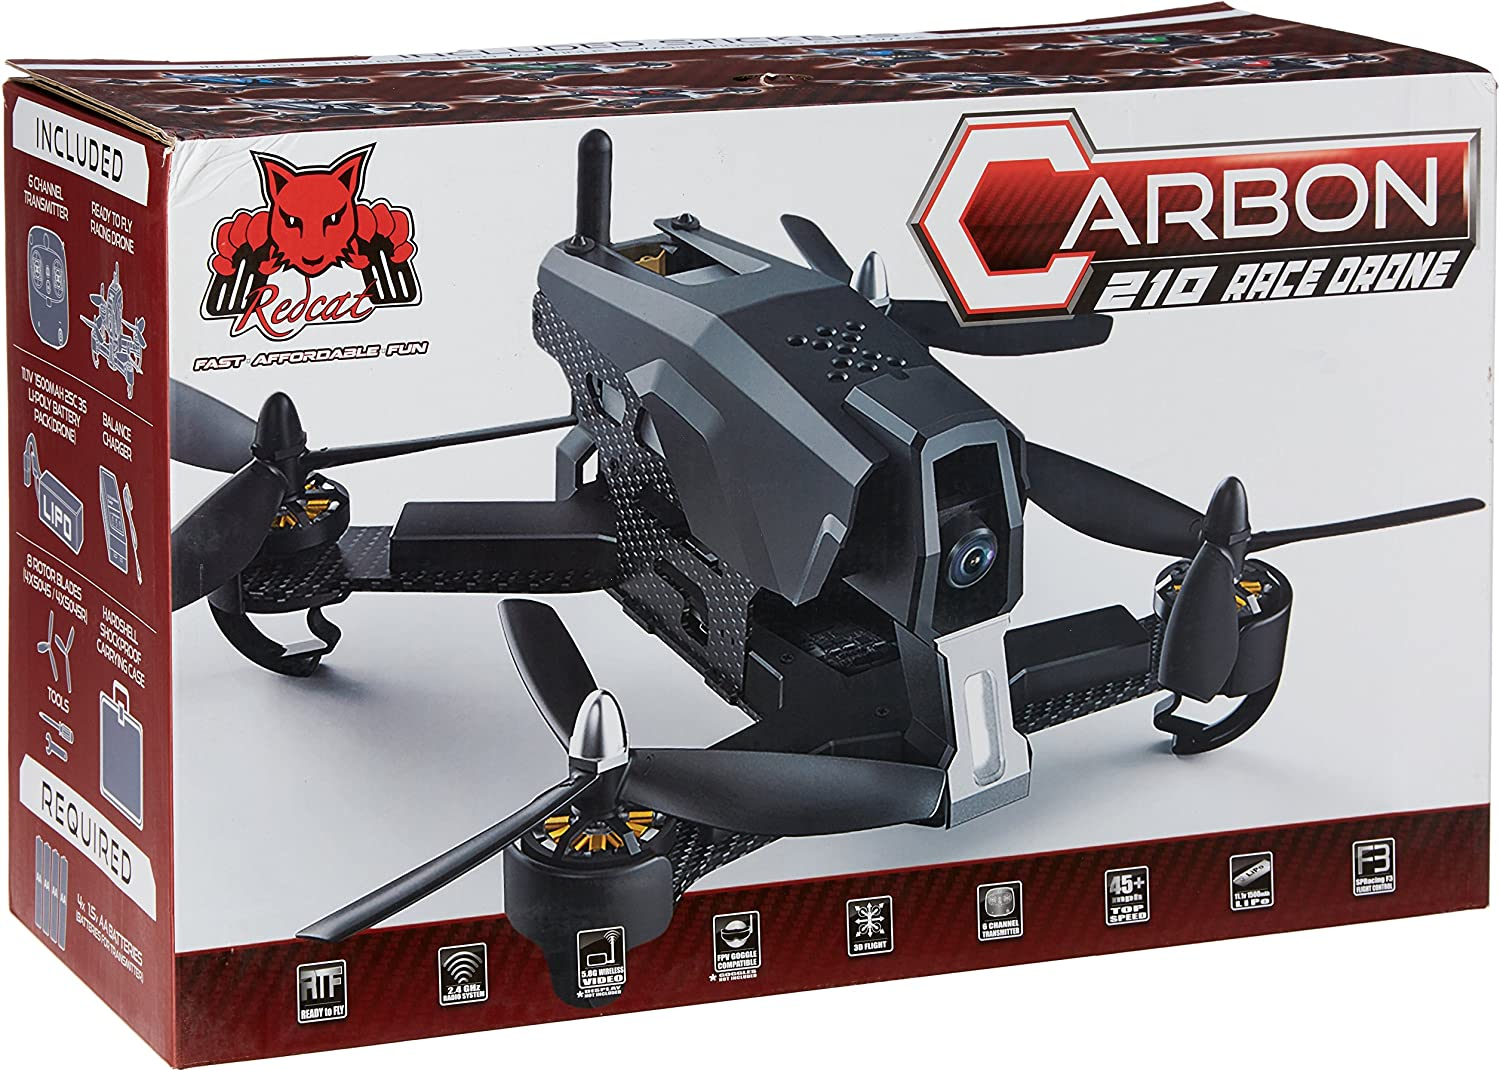 Redcat Racing Carbon 210 Race Brushless RTF RC Racing Drone w// HD Camera Black